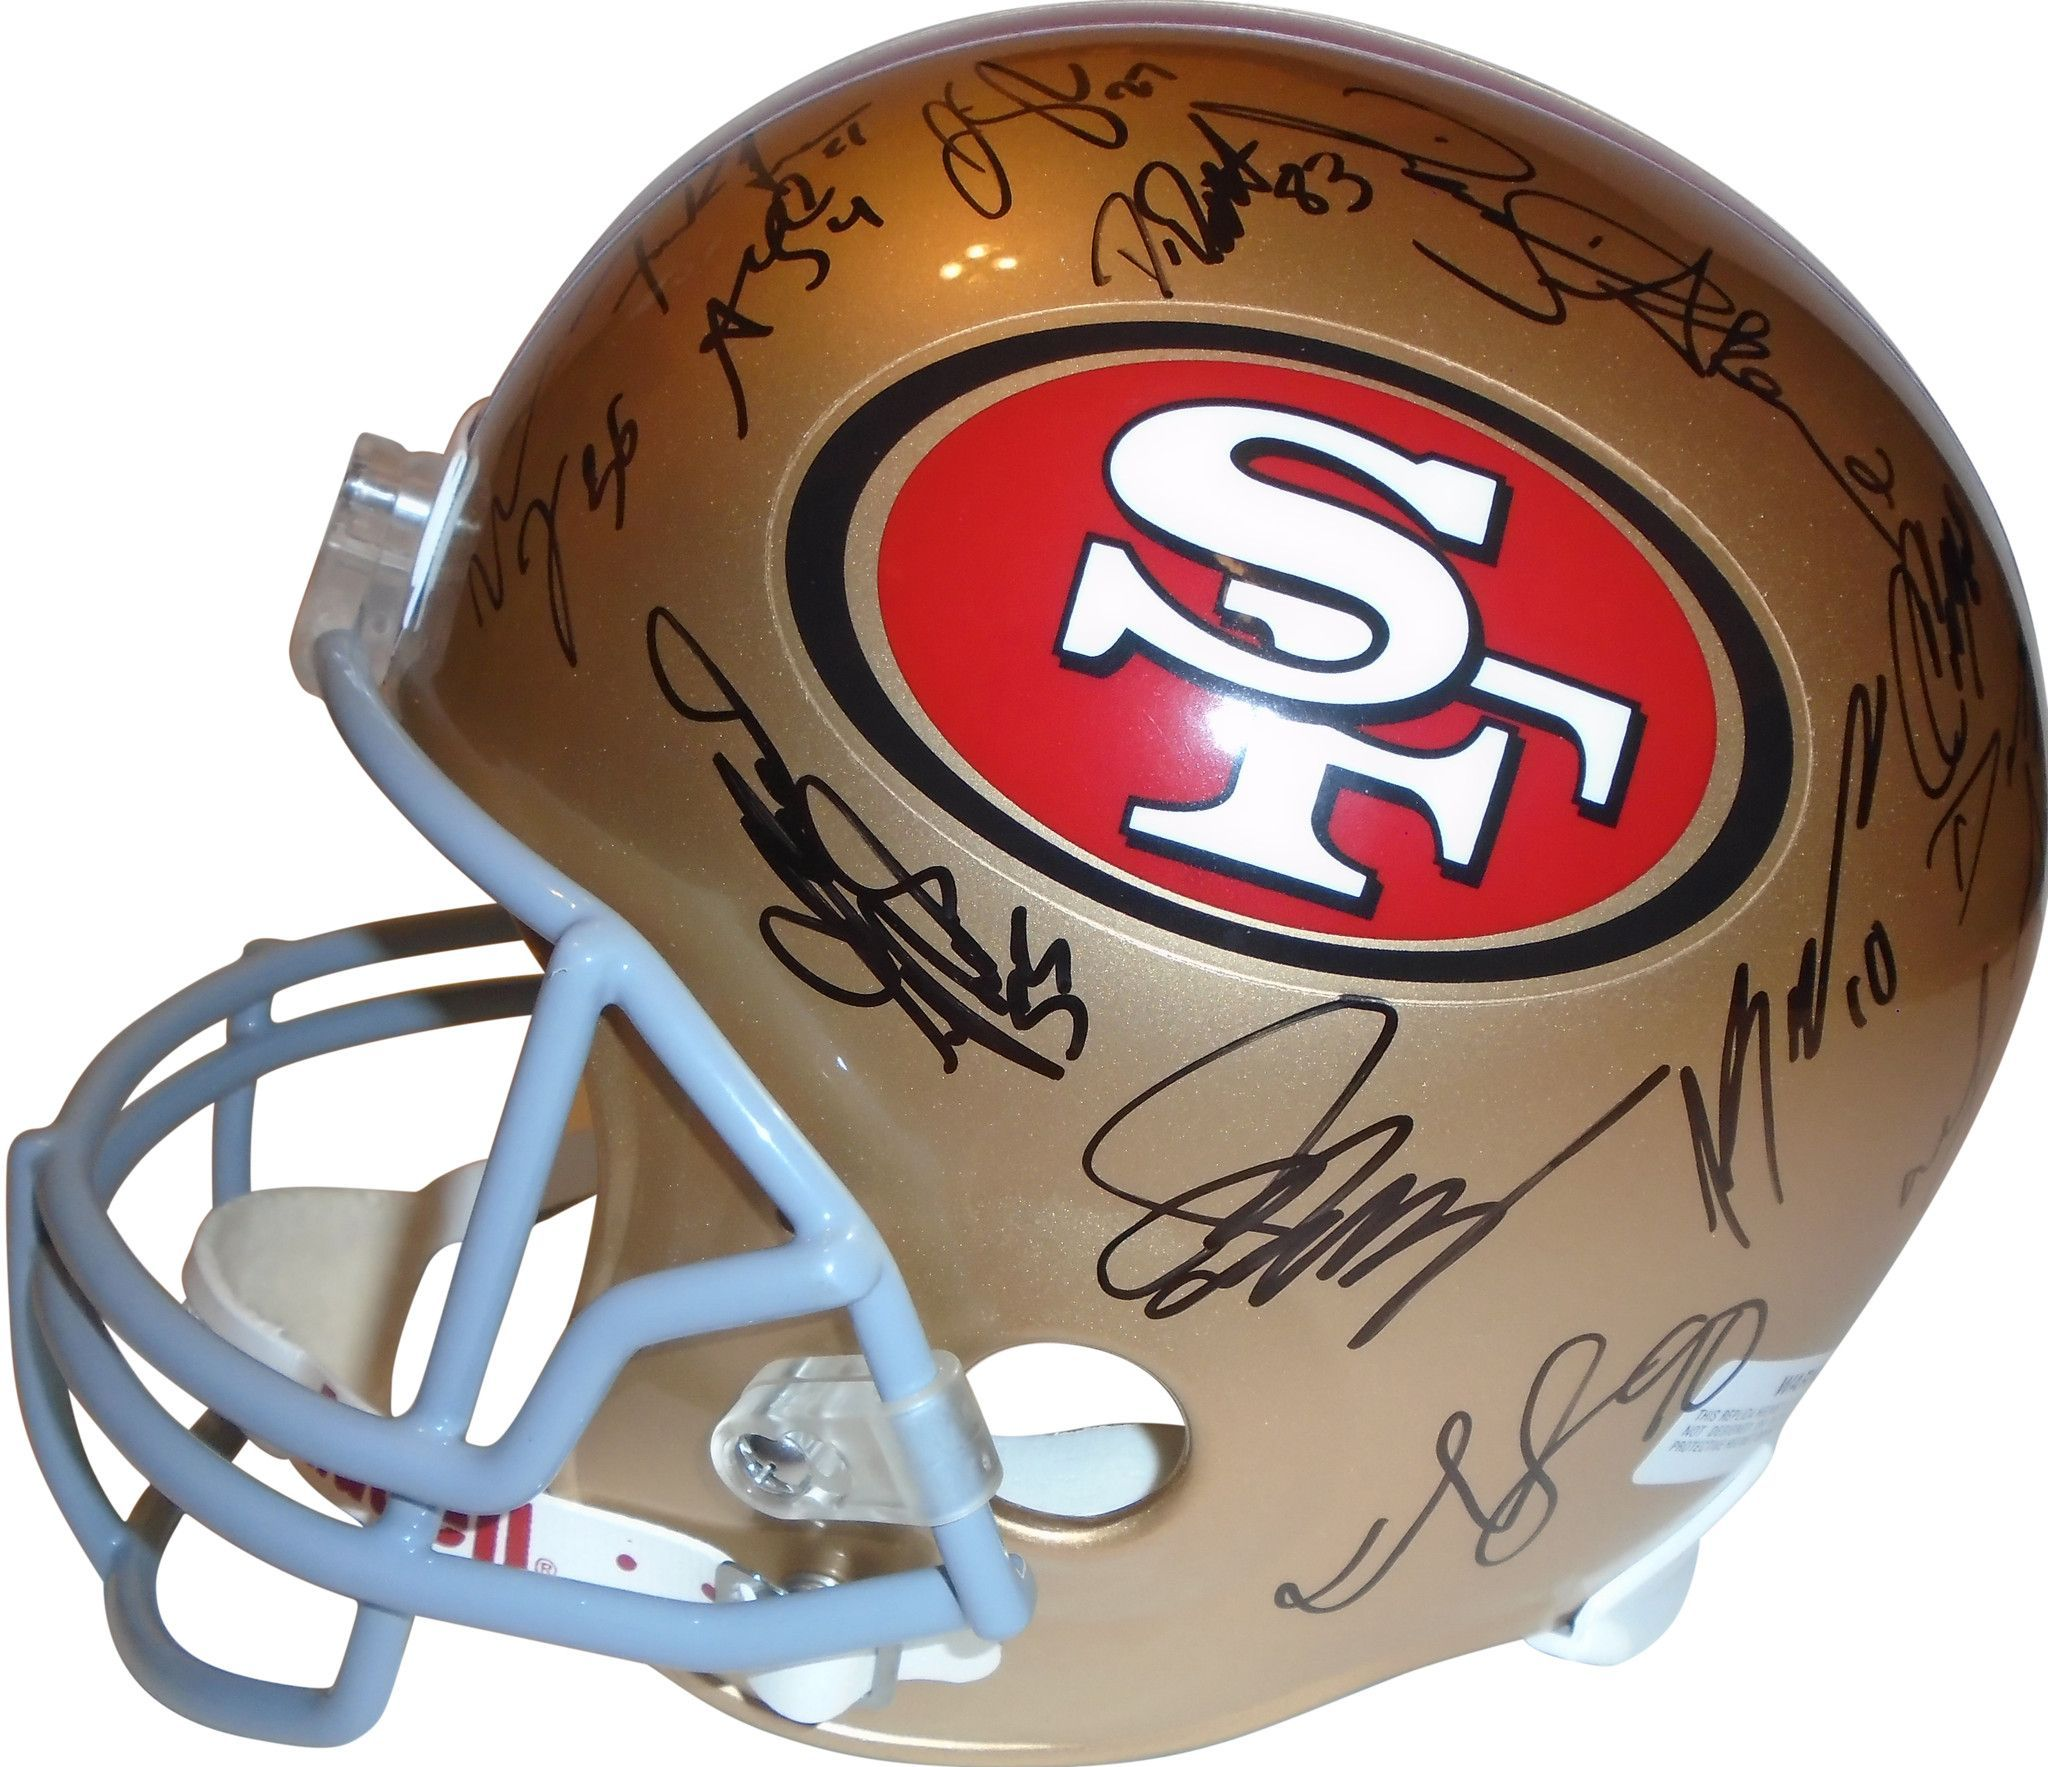 a30d26e09 2012 San Francisco 49ers Team Autographed Riddell Full Size Deluxe Replica  Football Helmet, Proof